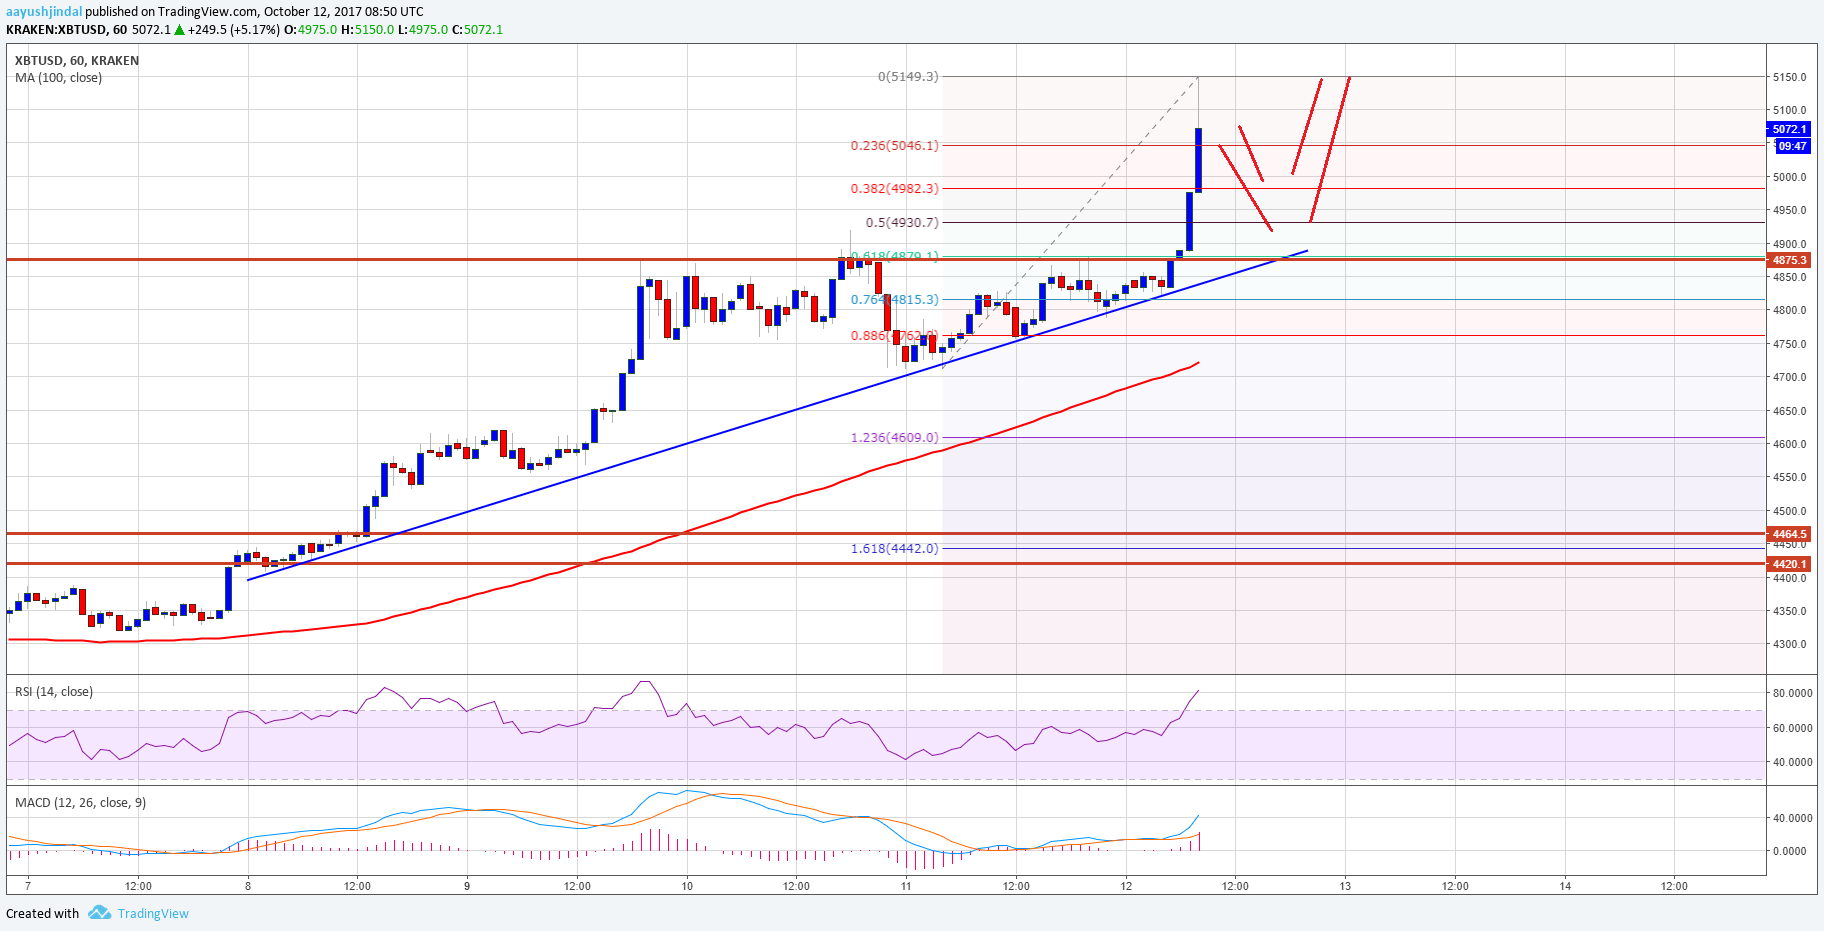 Bitcoin Price Chart All Time >> Bitcoin Price Analysis: BTC/USD Sets New ATH above $5140 - Ethereum World News